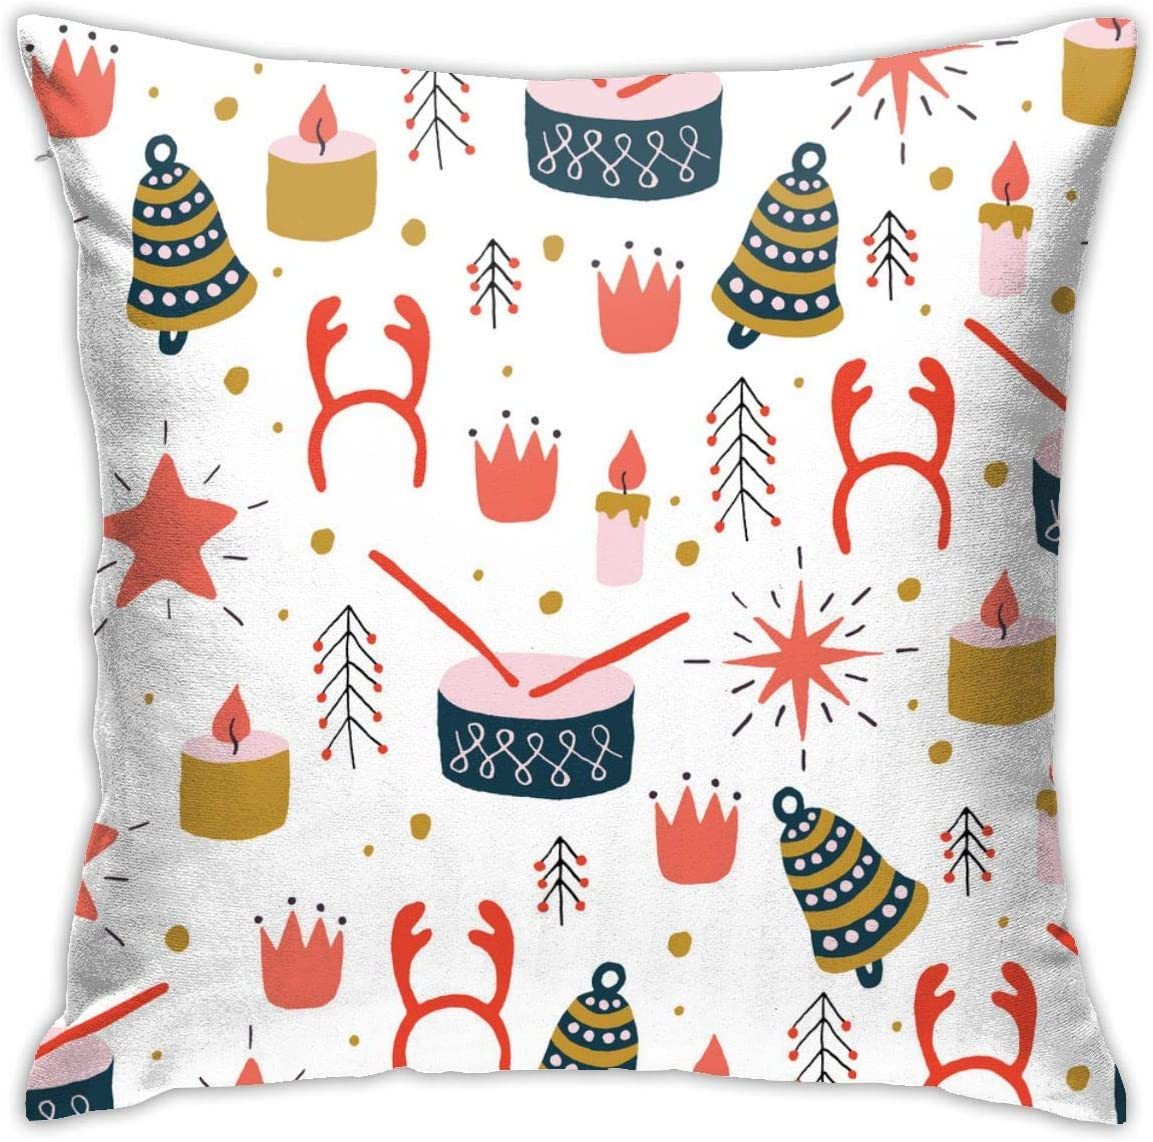 European Modern Minimalist Abstract Pattern Throw Pillow Christmas Seamless Pattern With Toys Pillow Decoration Set 18 X 18 Inches Home Kitchen